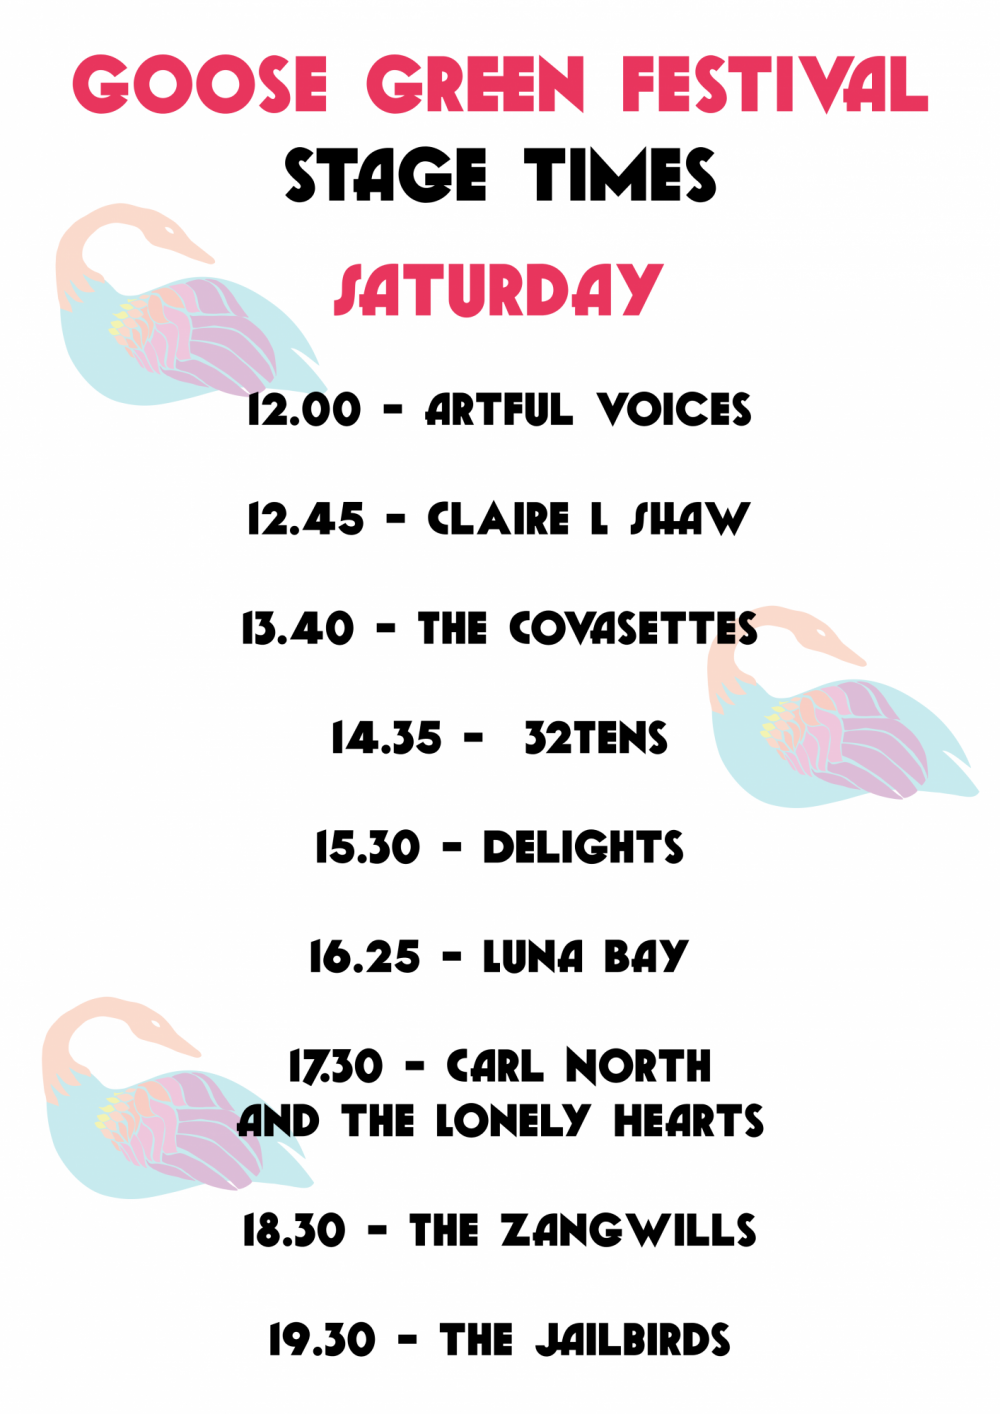 Goose Green Festival Full Line-Up & Stage Times Announced